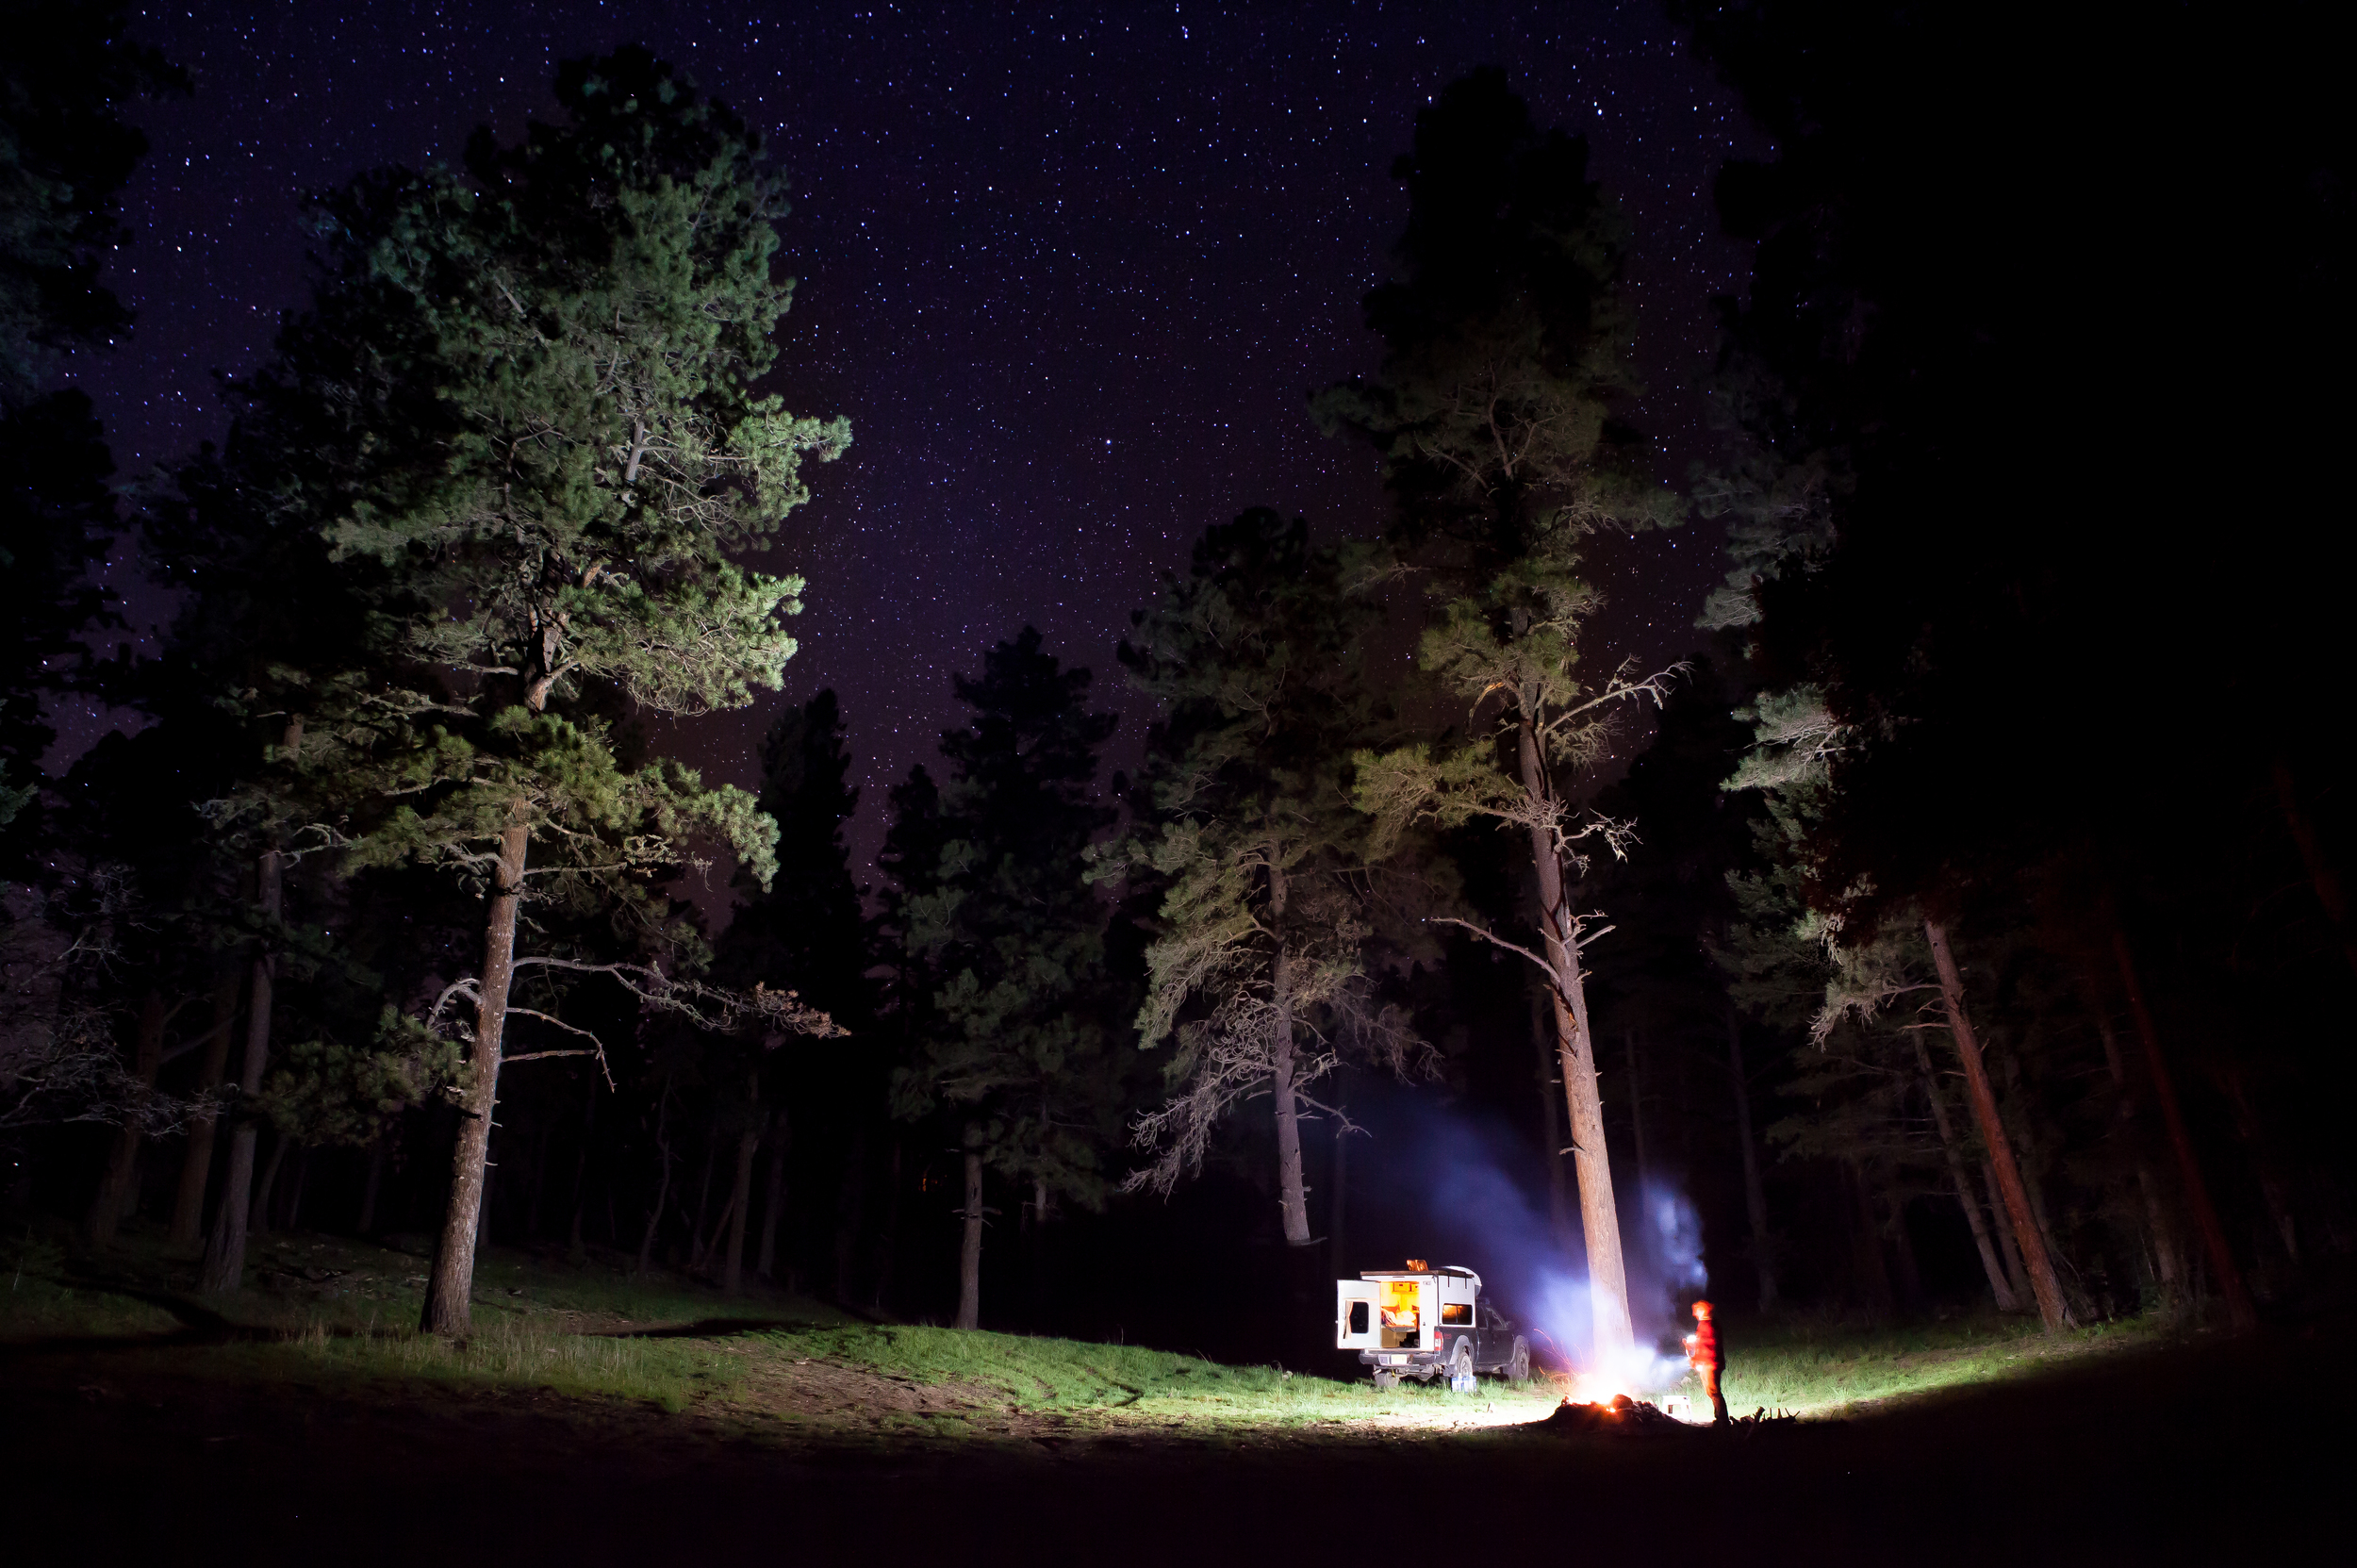 150509_Lincon_NatForest_Nightscape_1043_cropped.jpg